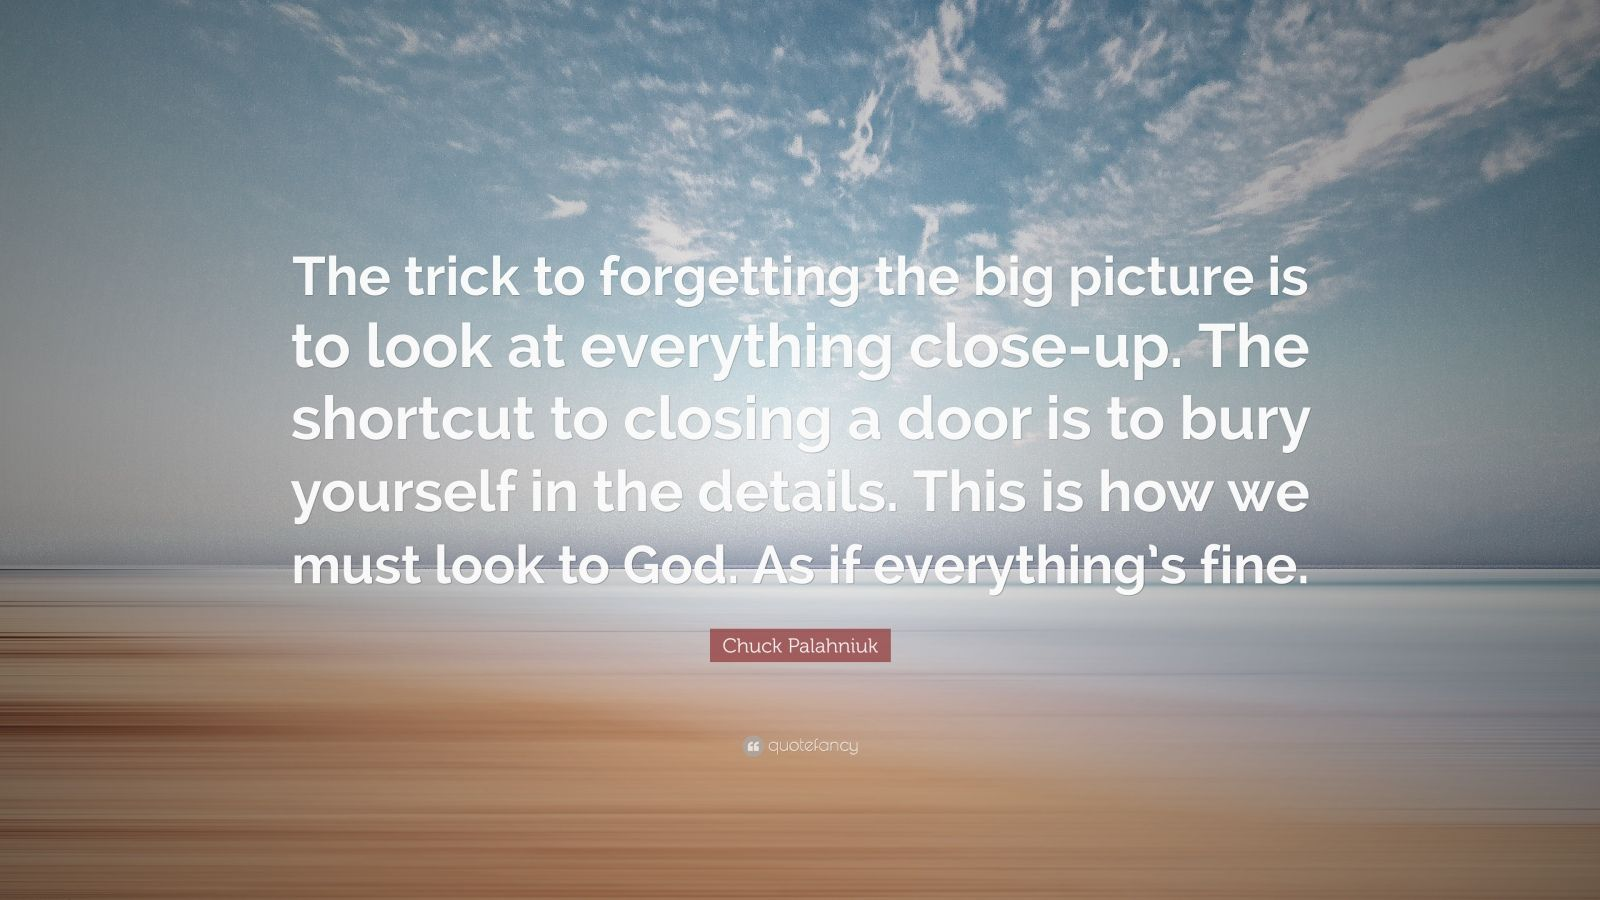 """Chuck Palahniuk Quote: """"The trick to forgetting the big picture is to look at everything close-up. The shortcut to closing a door is to bury yourself in the details. This is how we must look to God. As if everything's fine."""""""